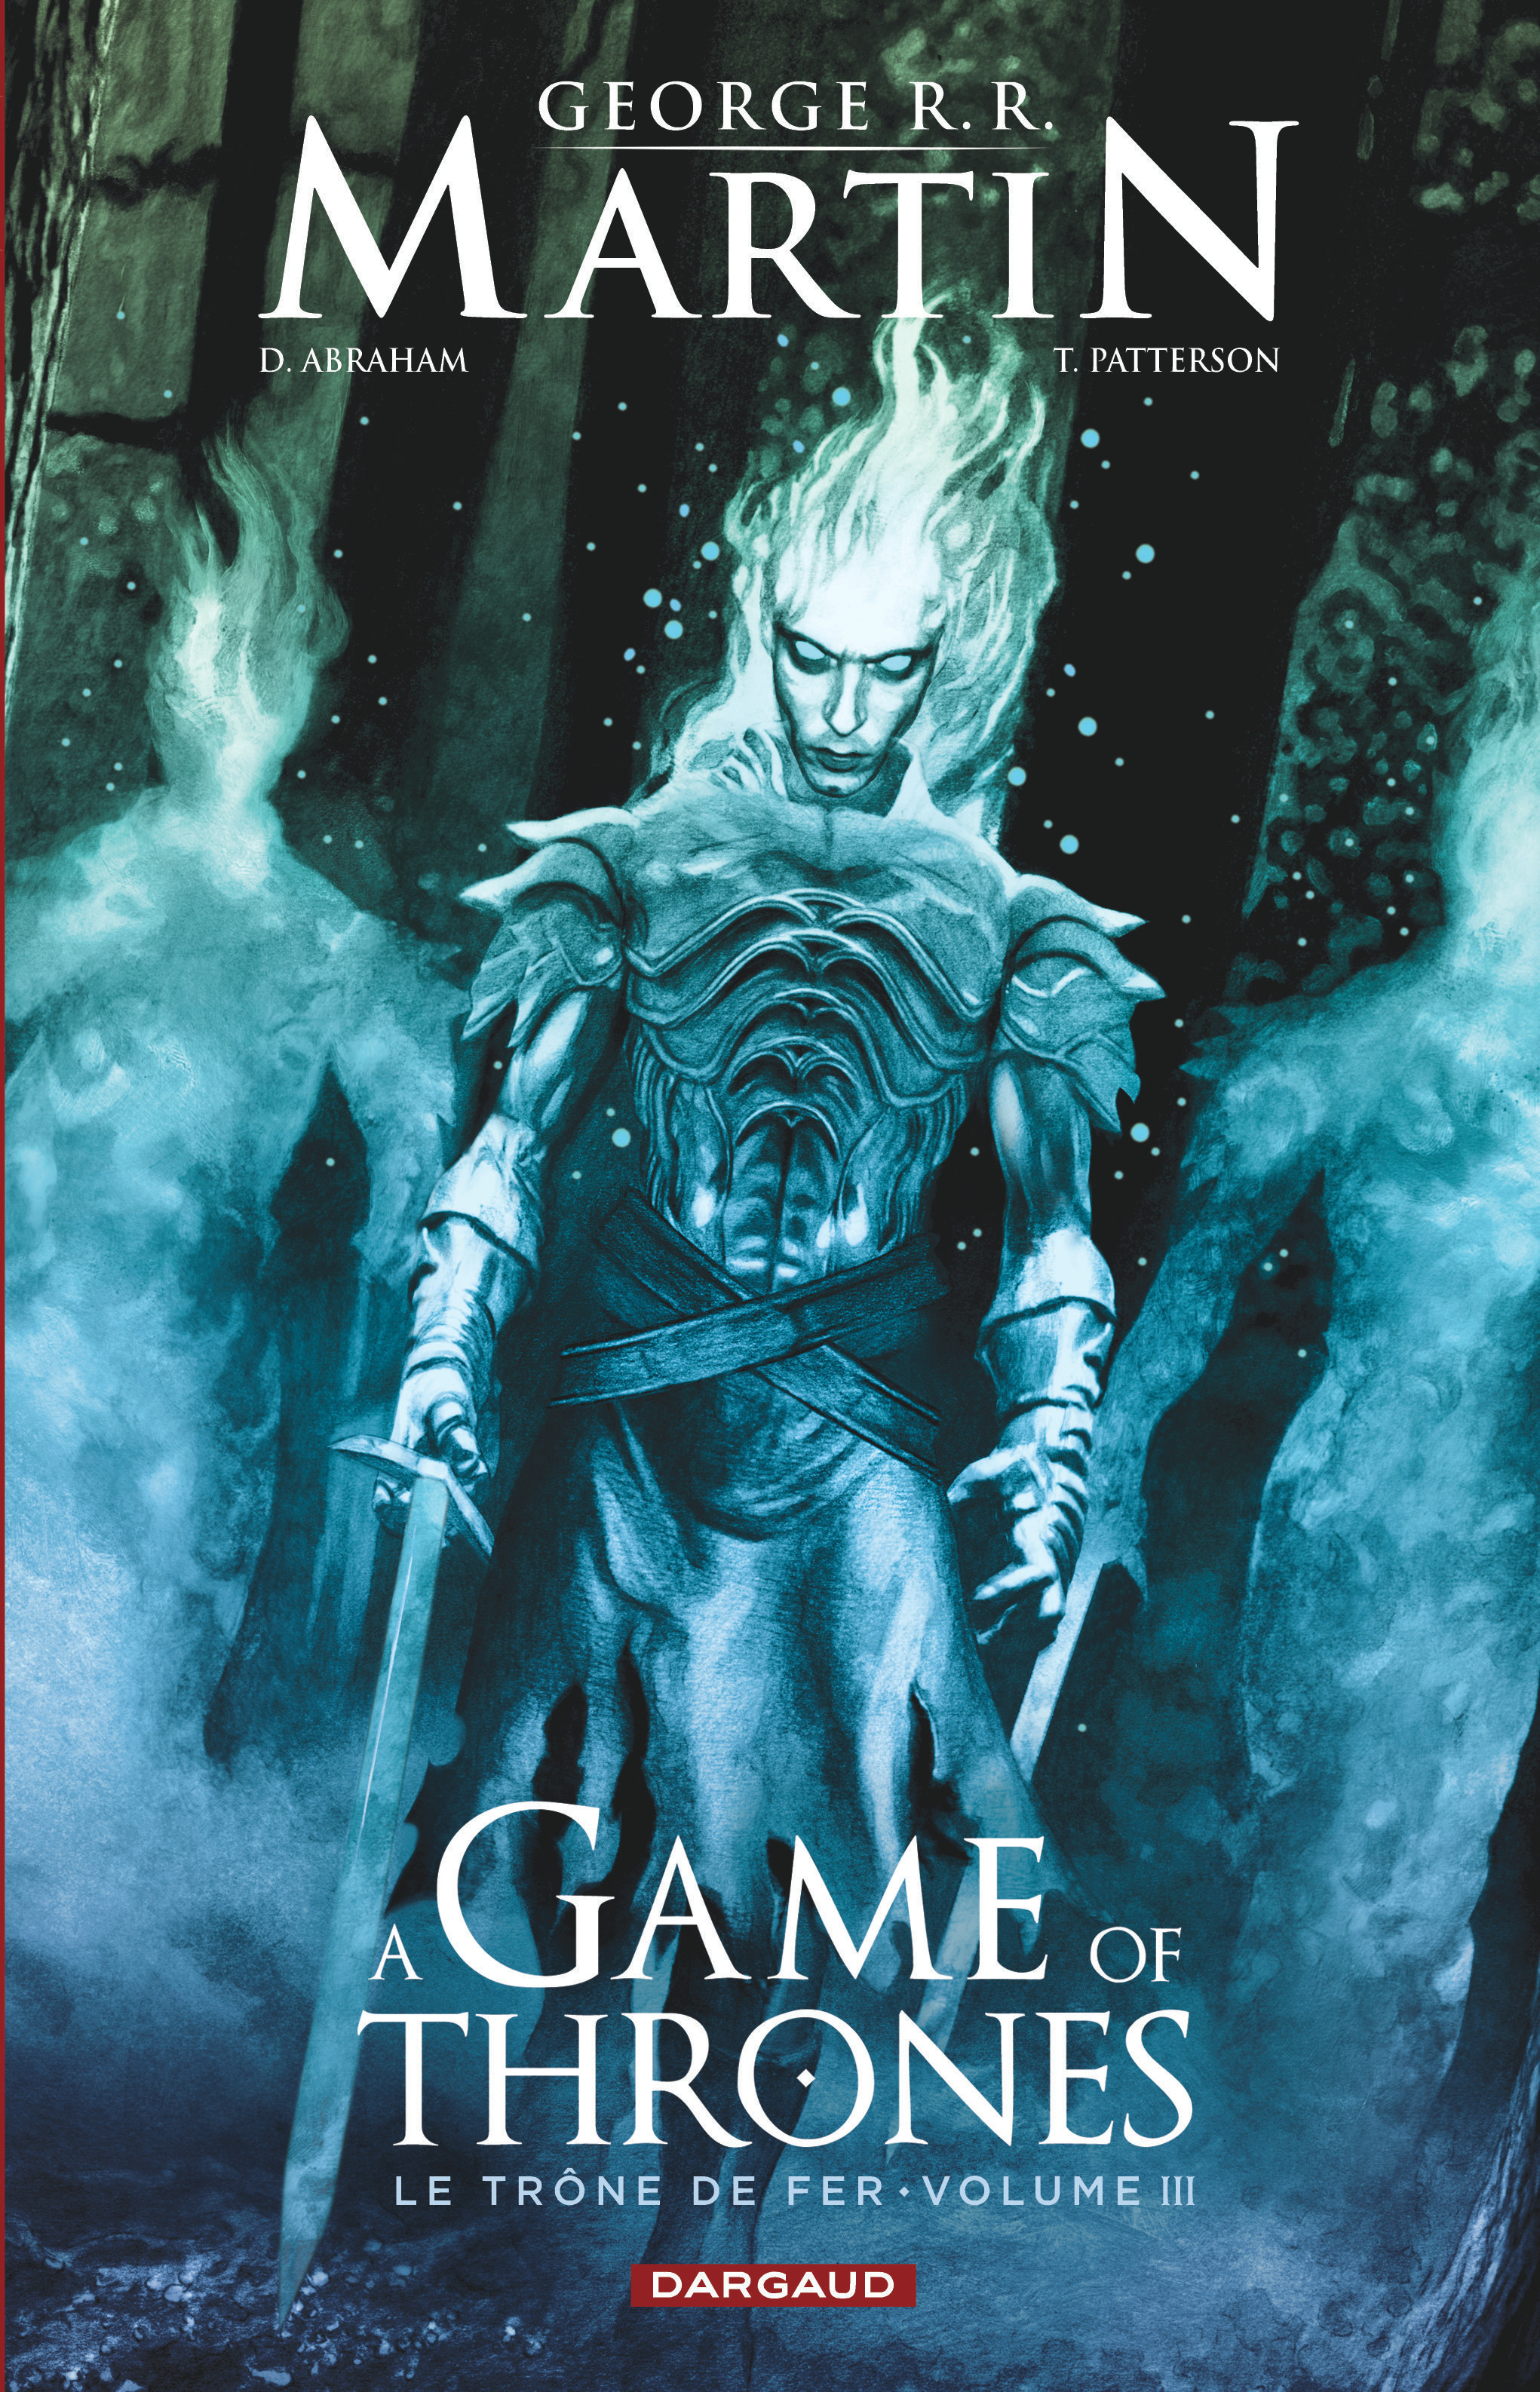 A GAME OF THRONES-LE TRONE FER - GAME OF THRONES (A) - LE TRONE DE FER - TOME 3 - A GAME OF THRO